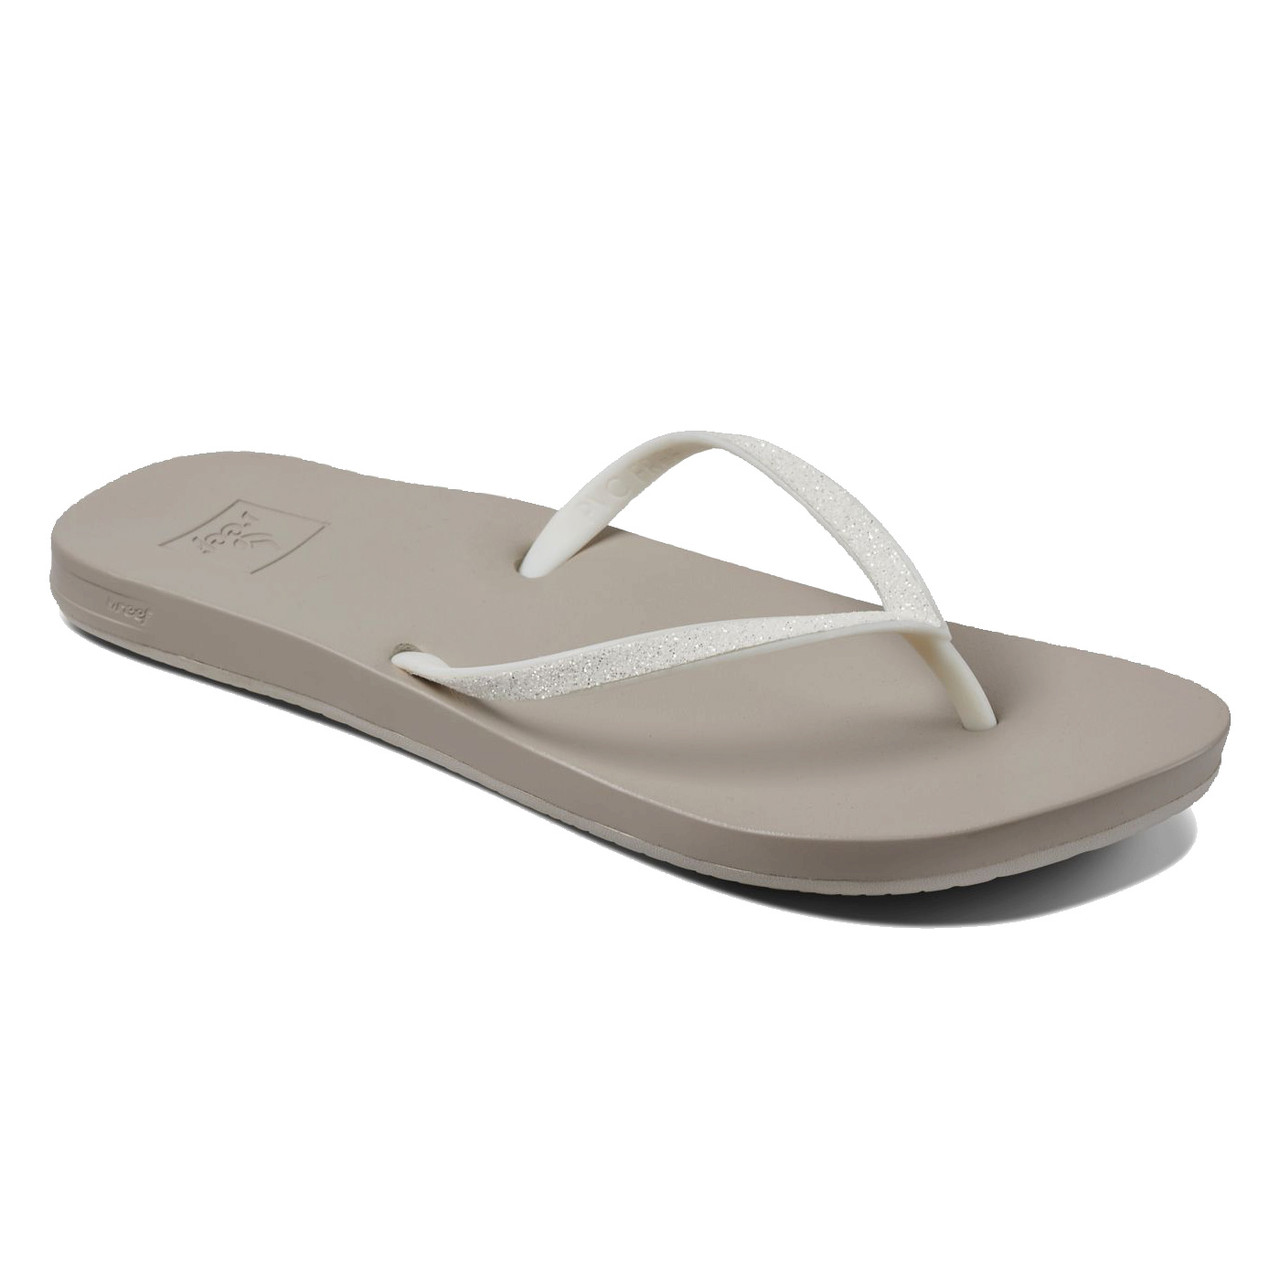 14122b5354e3 Reef Women s Flip Flops - Cushion Bounce Stargazer - Bridal - Surf and Dirt